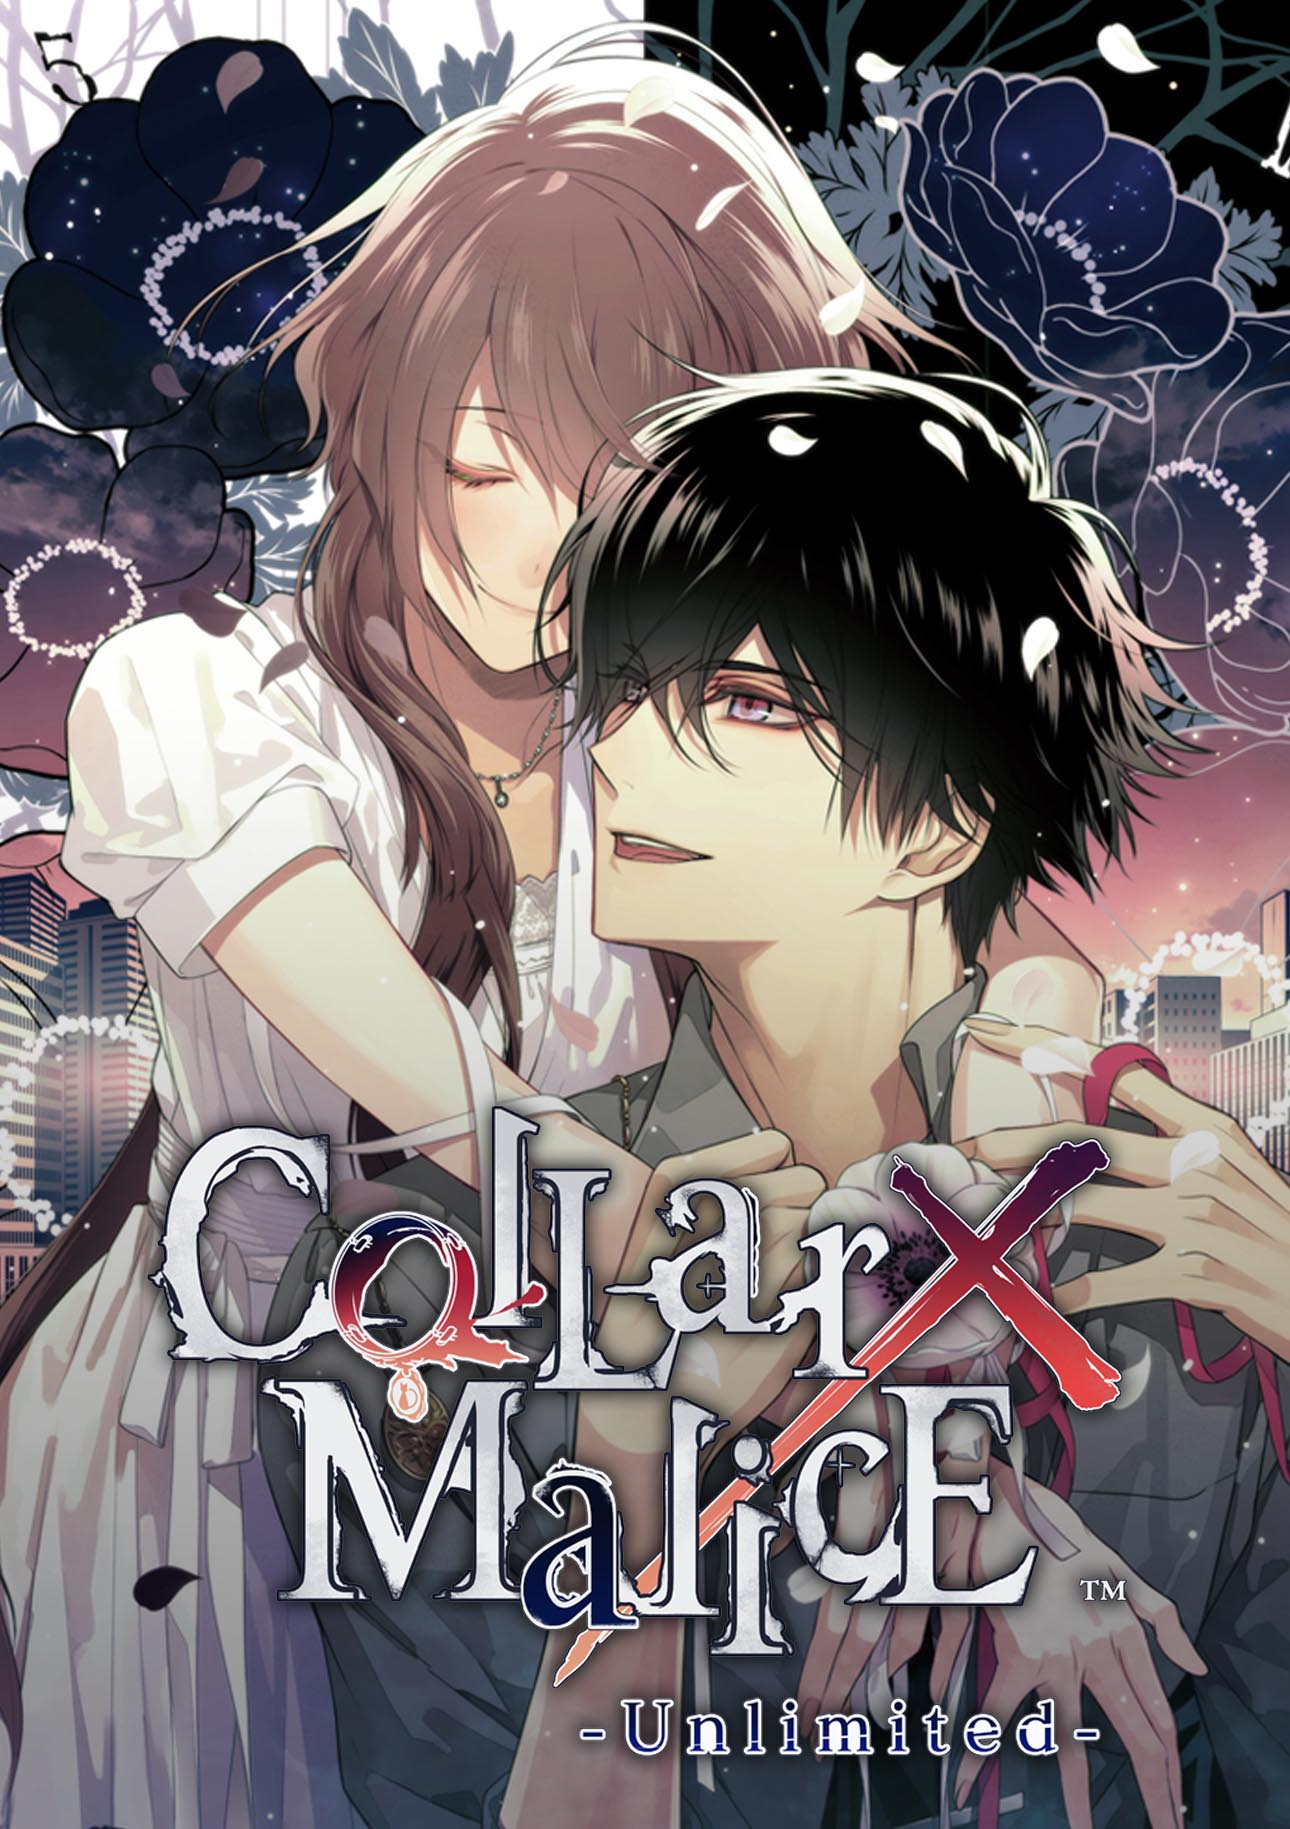 Collar_X_Malice_Unlimited